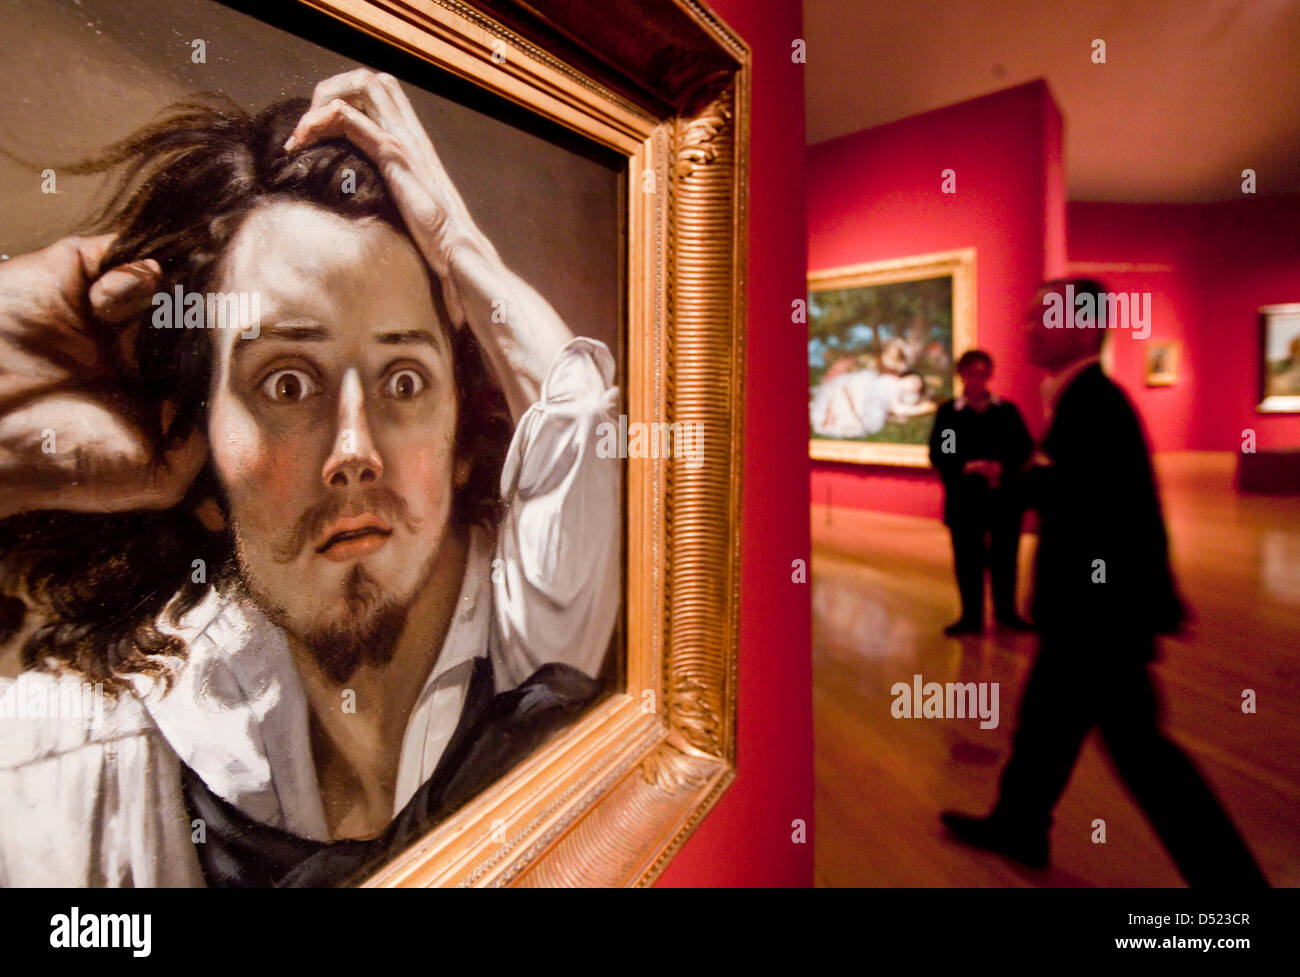 The Painting Self Portrait The Desperate Man 1844 45 Of French Stock Photo Alamy Слова и текст песни the black keys the desperate man предоставлены сайтом megalyrics.ru. https www alamy com stock photo the painting self portrait the desperate man 184445 of french painter 54750999 html